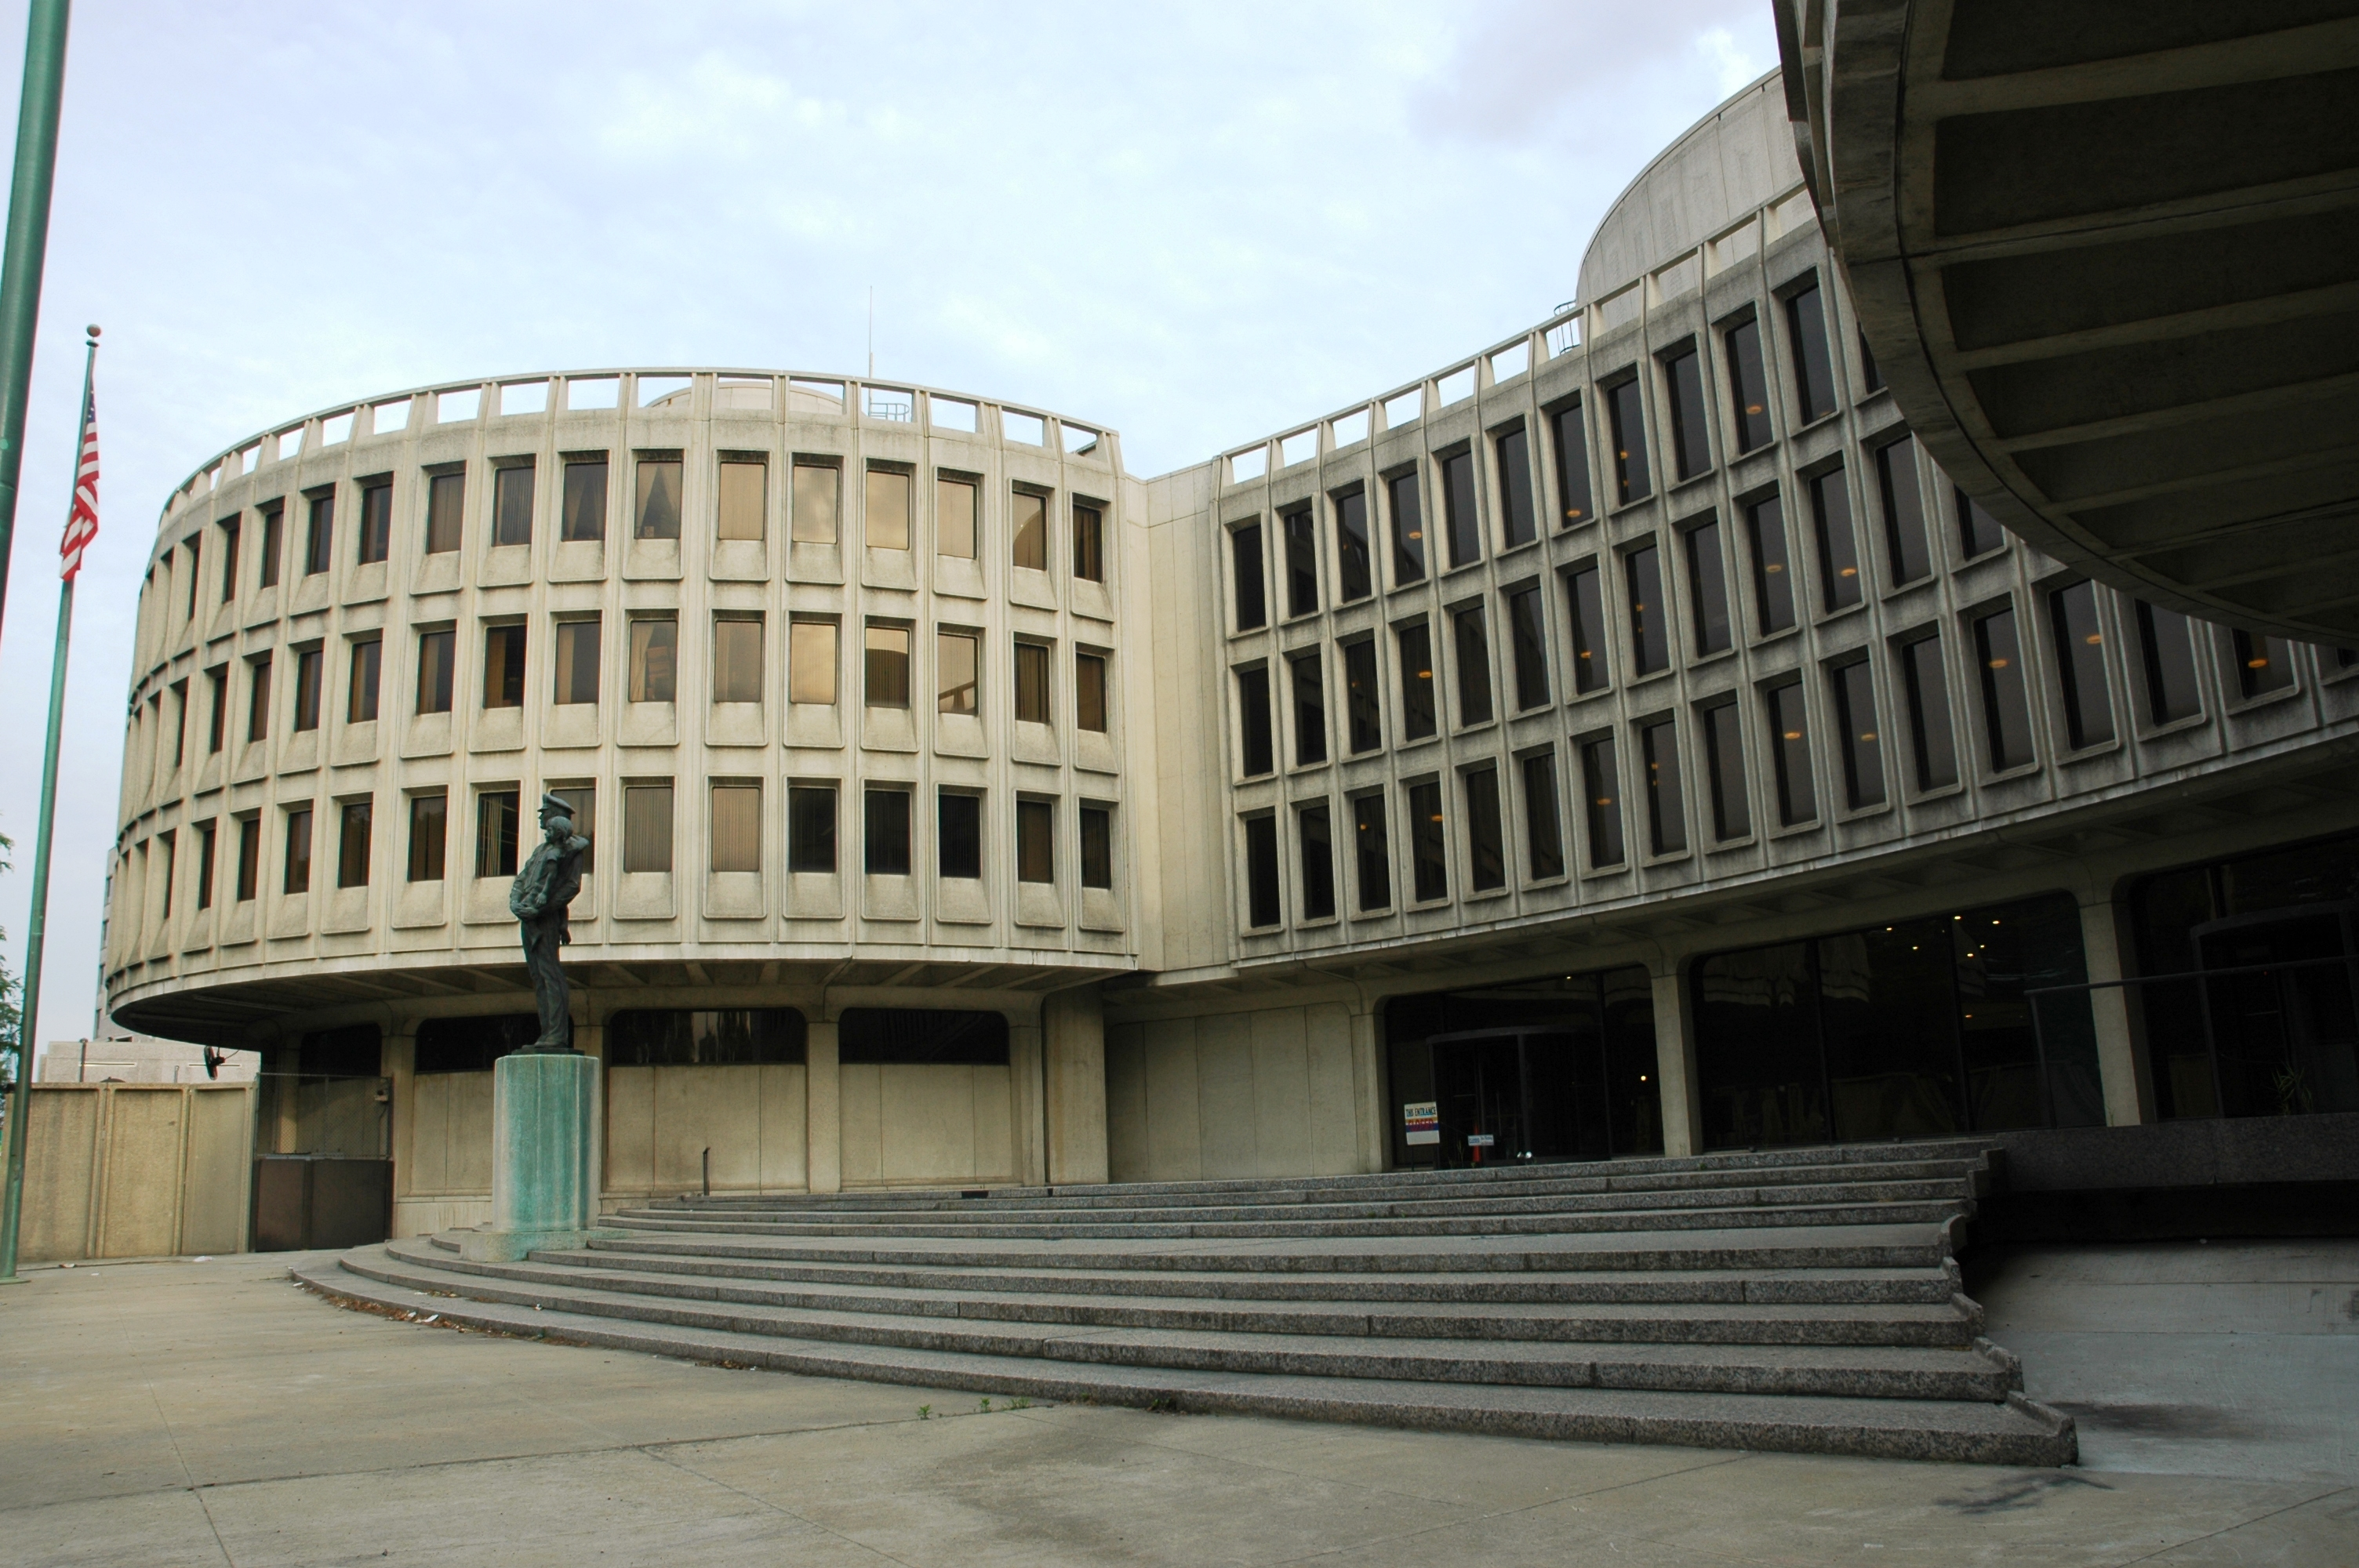 The Police Administration Building, 700 Race St., was designed in the early 1960s by Geddes, Brecher, Qualls & Cunningham.